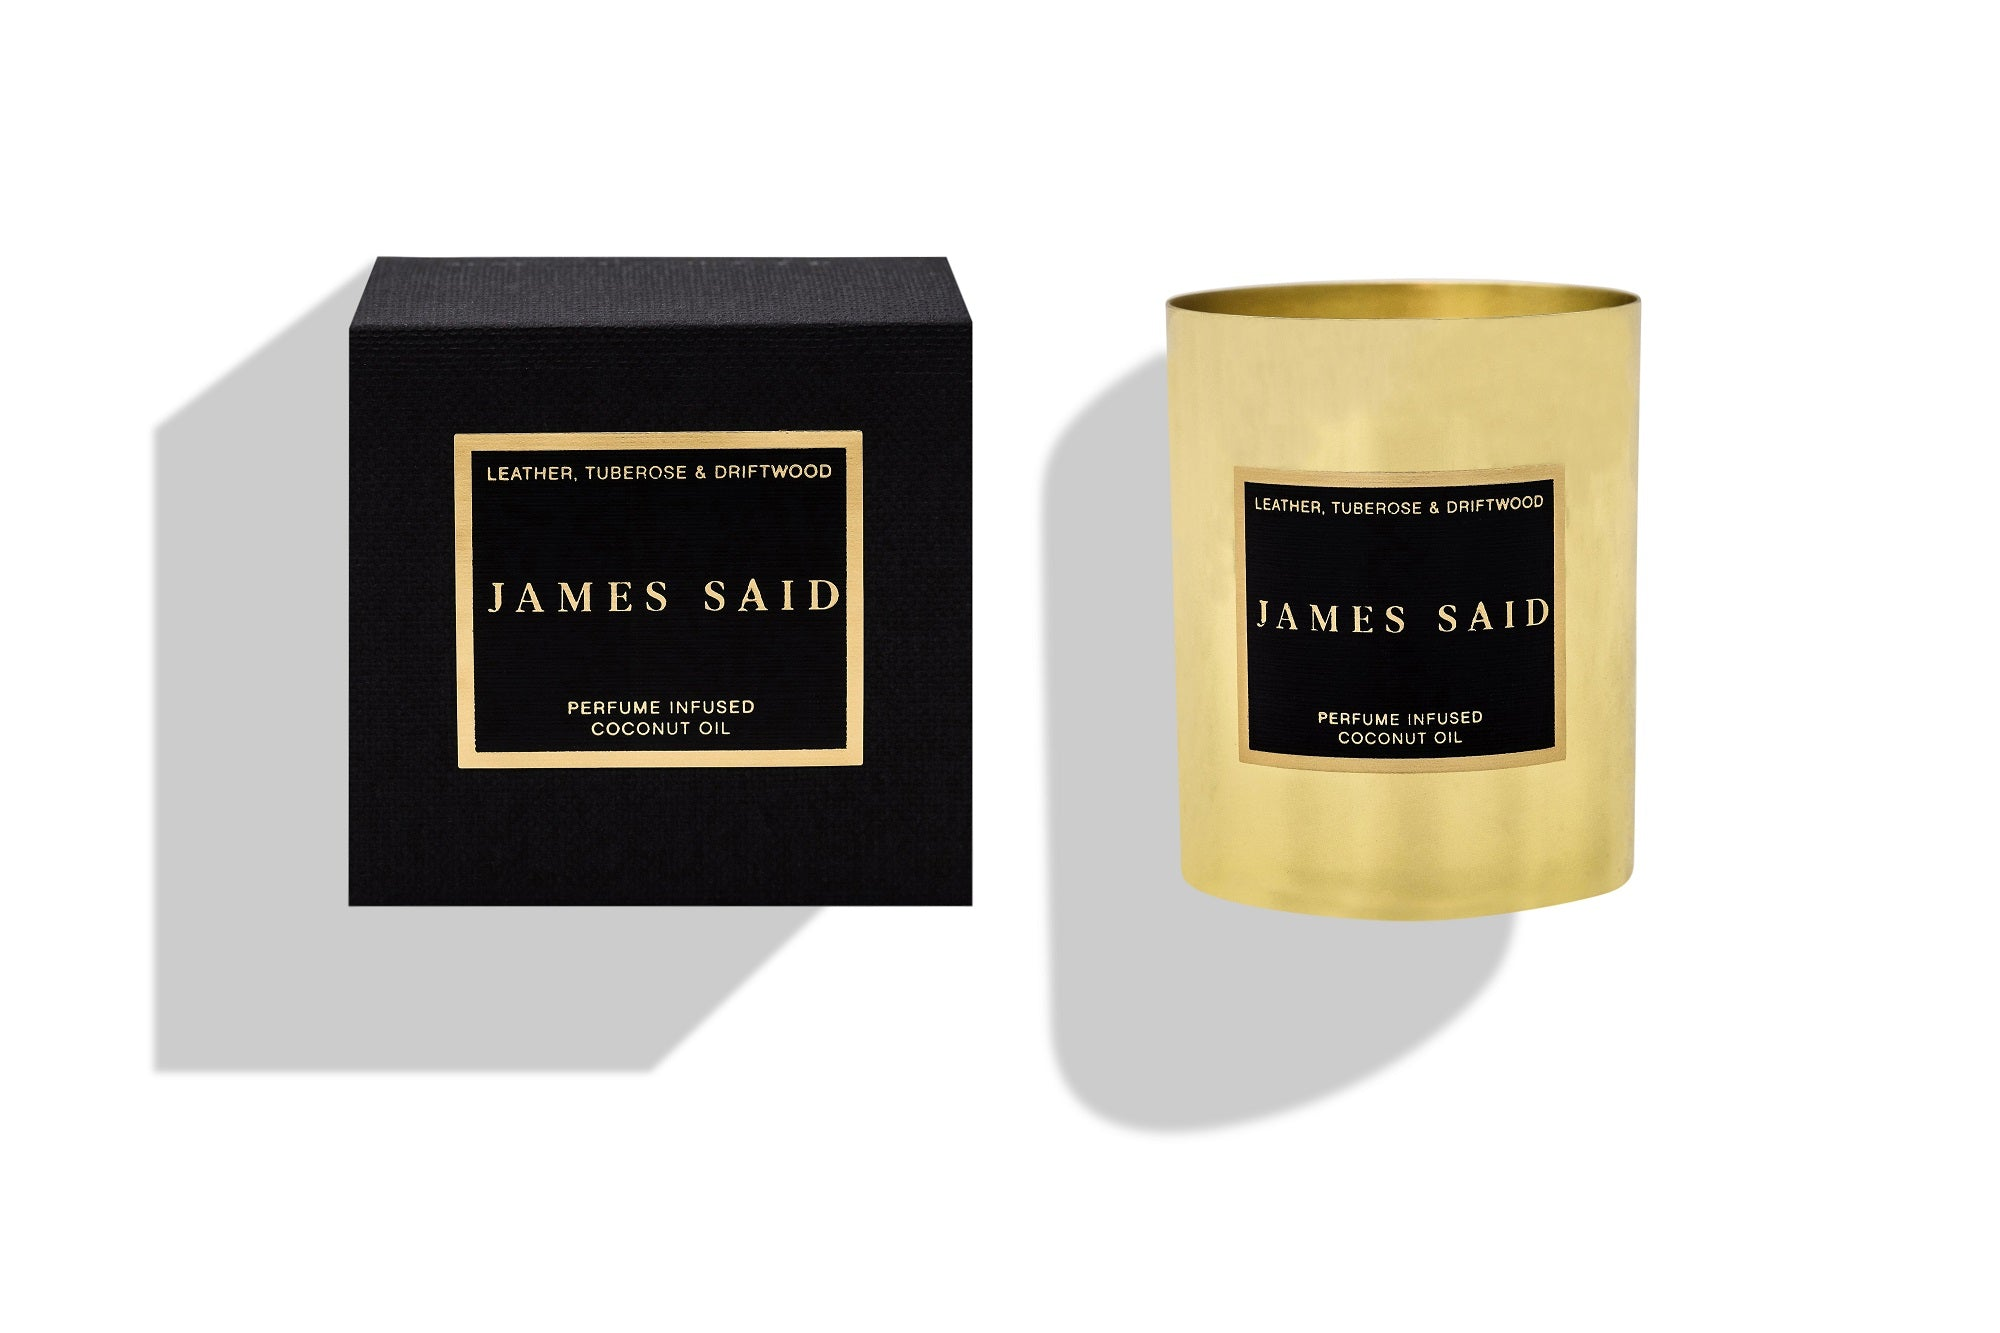 James Said Leather, Tuberose & Driftwood Brass Candle - 350g